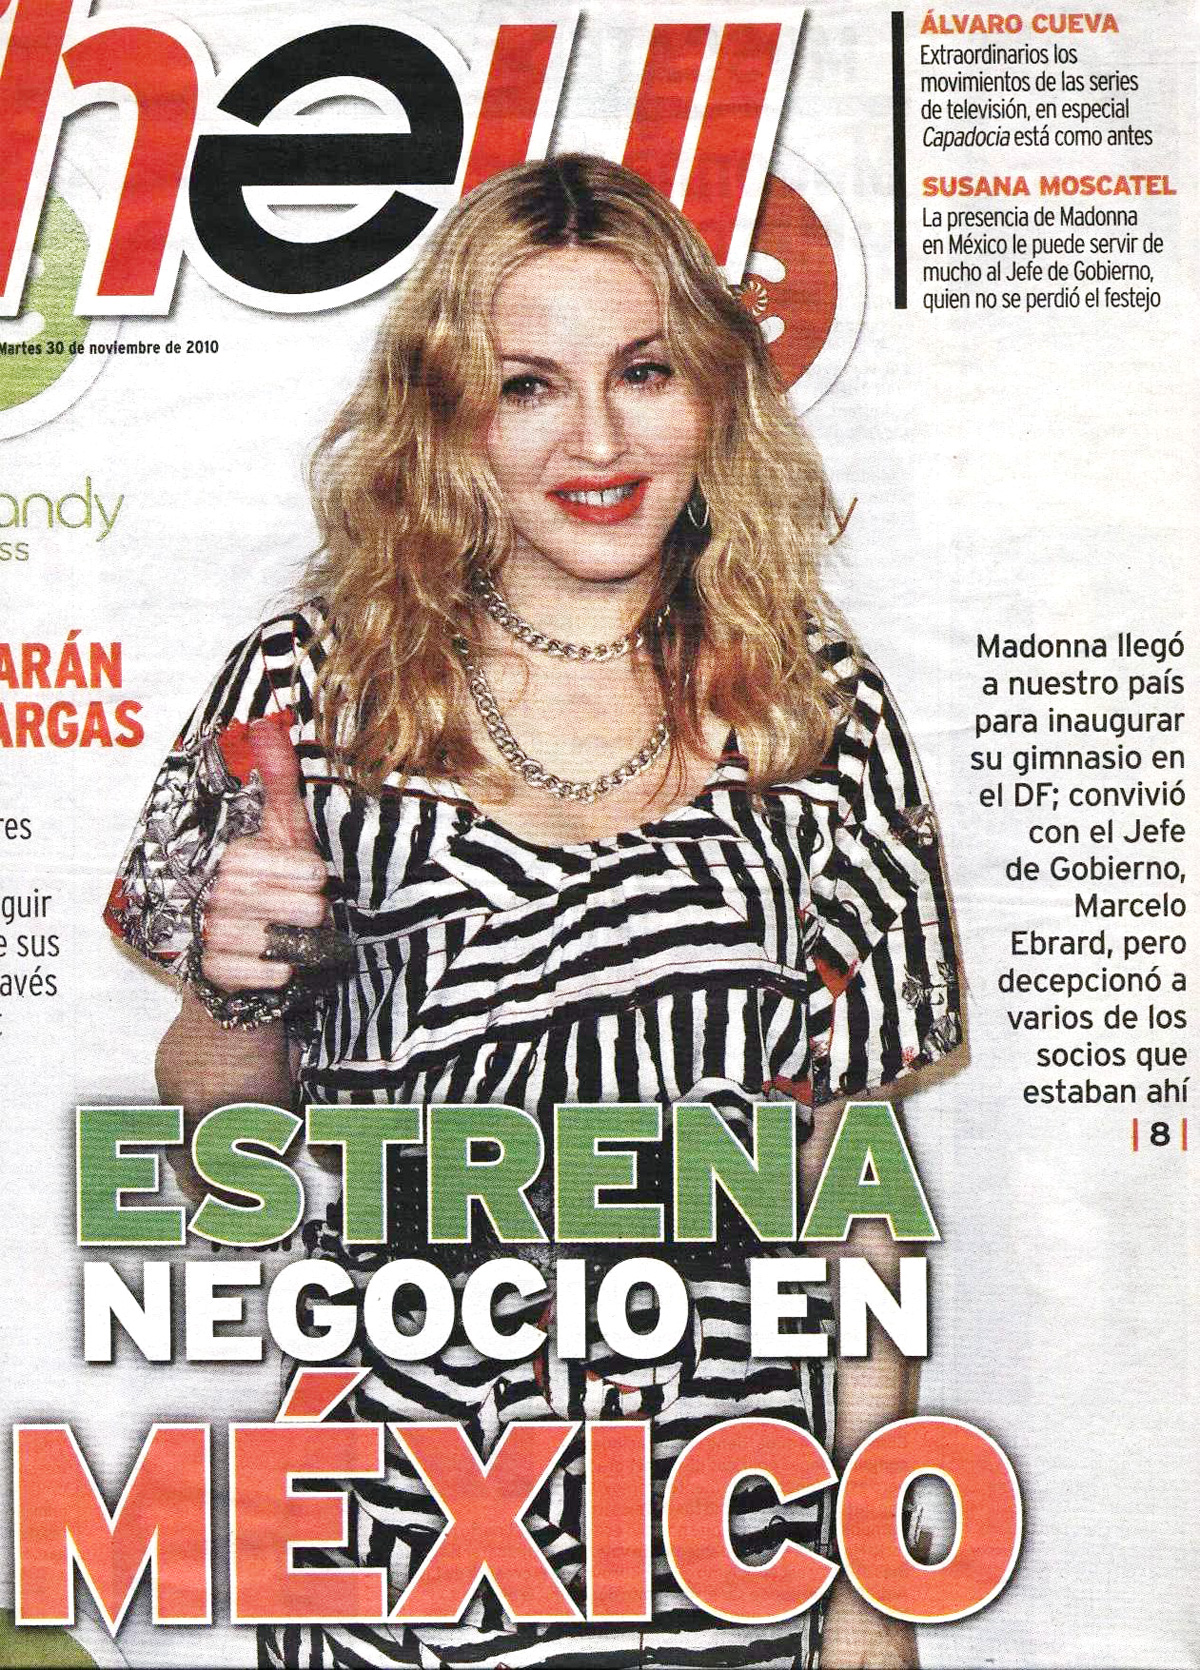 http://www.madonnatribe.com/i_press_31/mexico_003.jpg